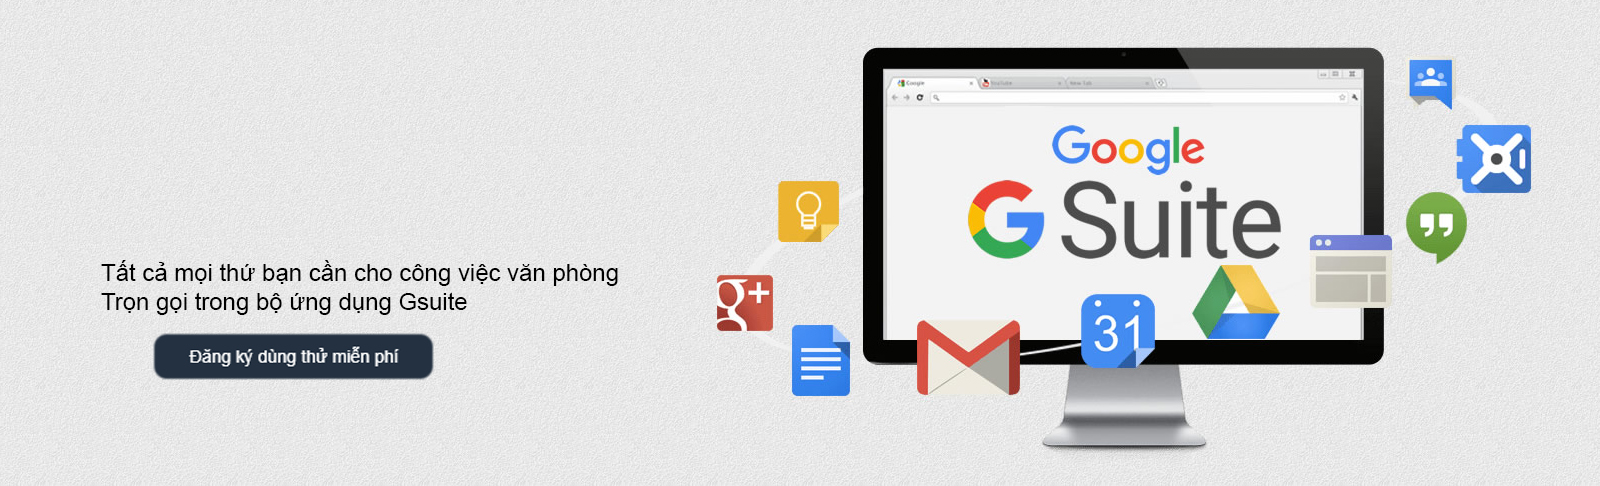 gsuite-email-google-doanh-nghiep-05